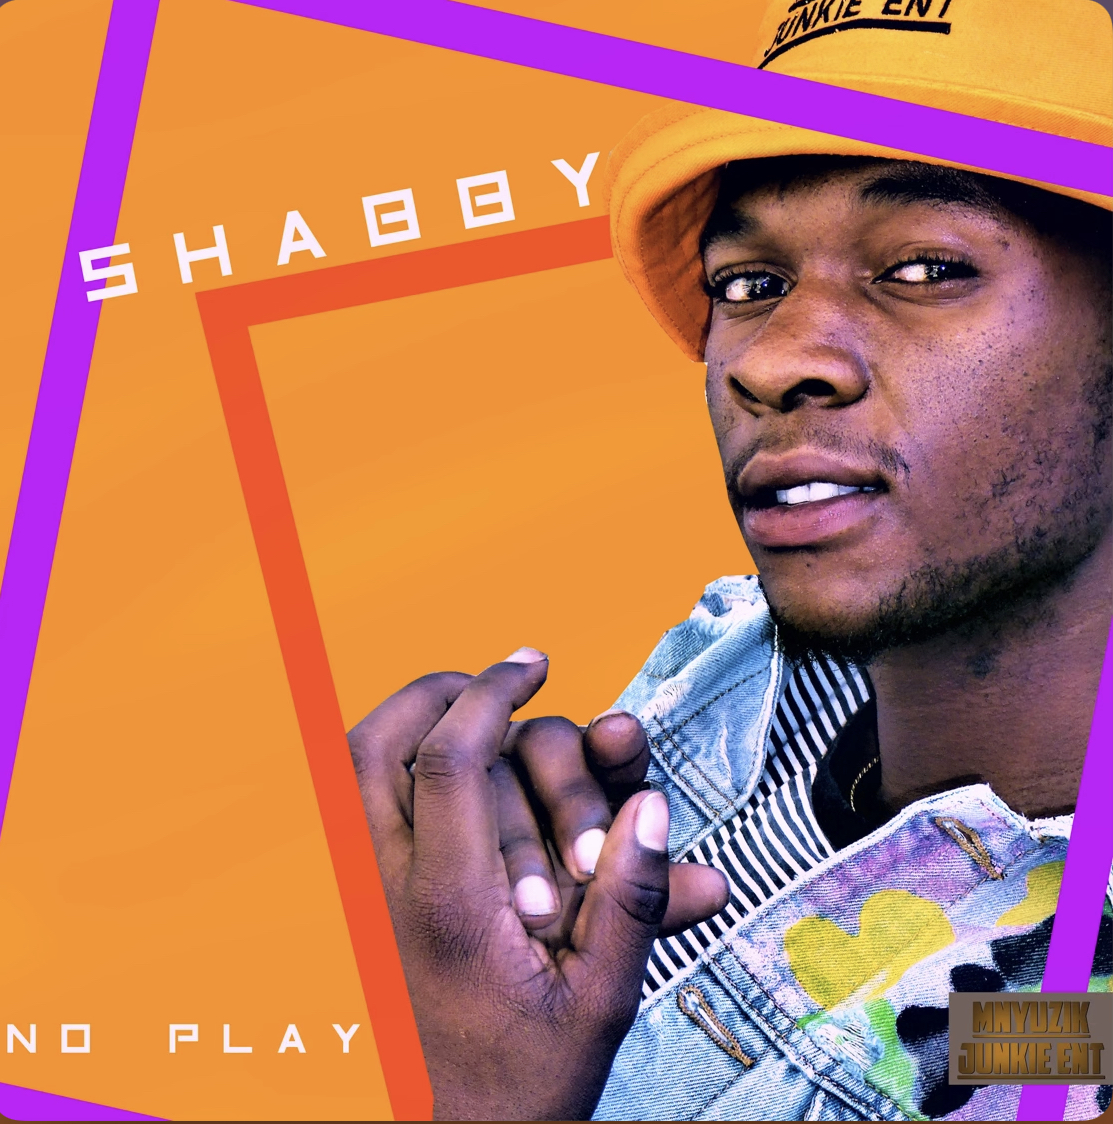 Shabby - No Play